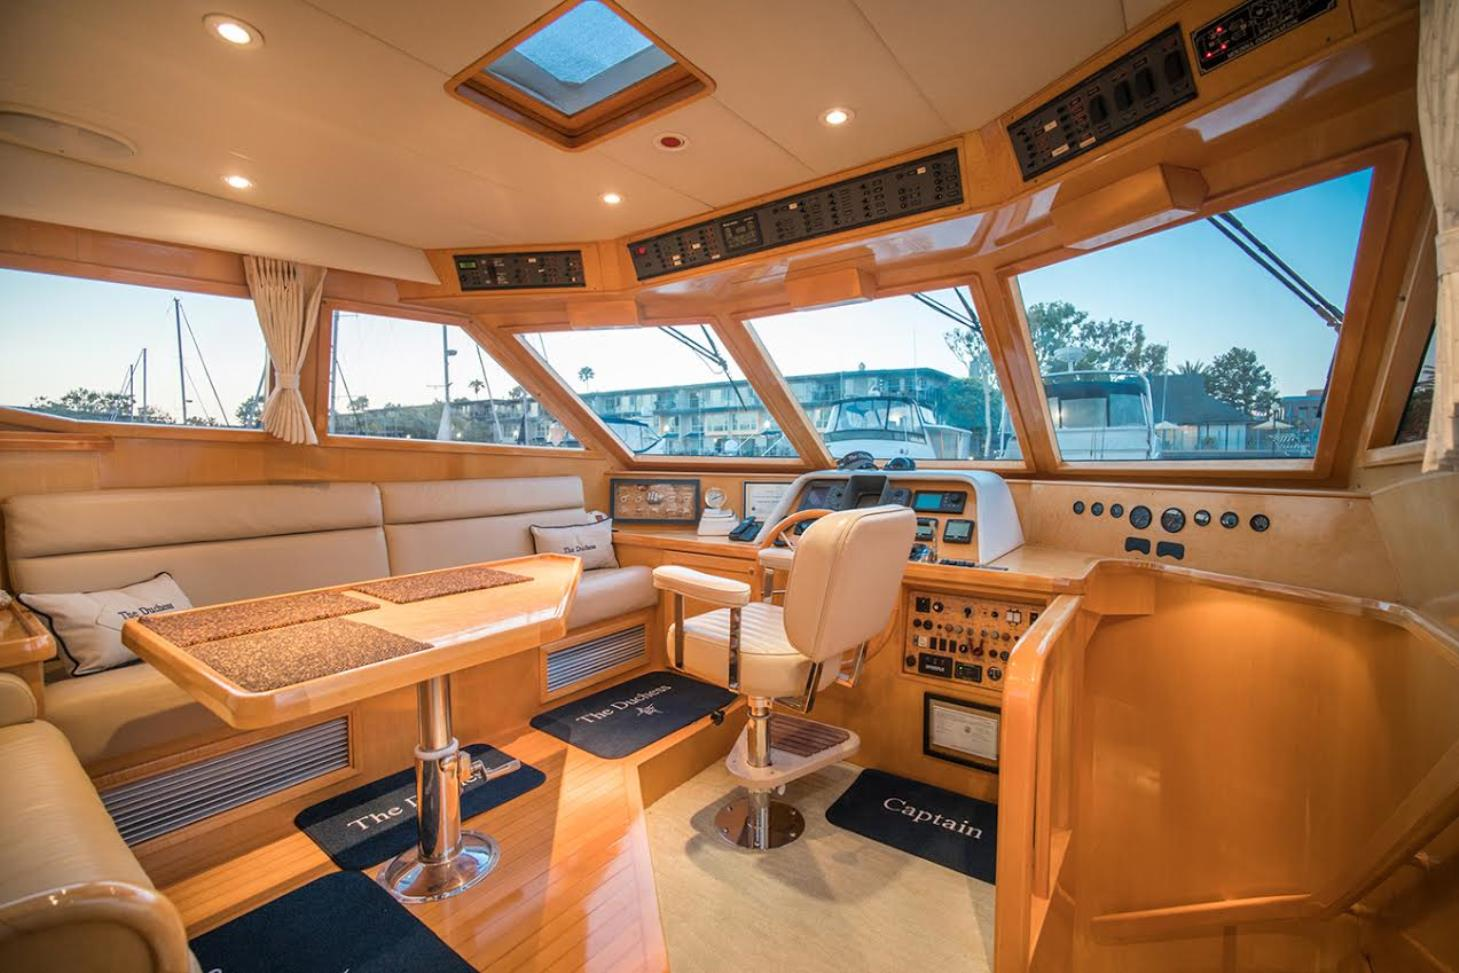 The Duchess Yacht Charter Service image 5